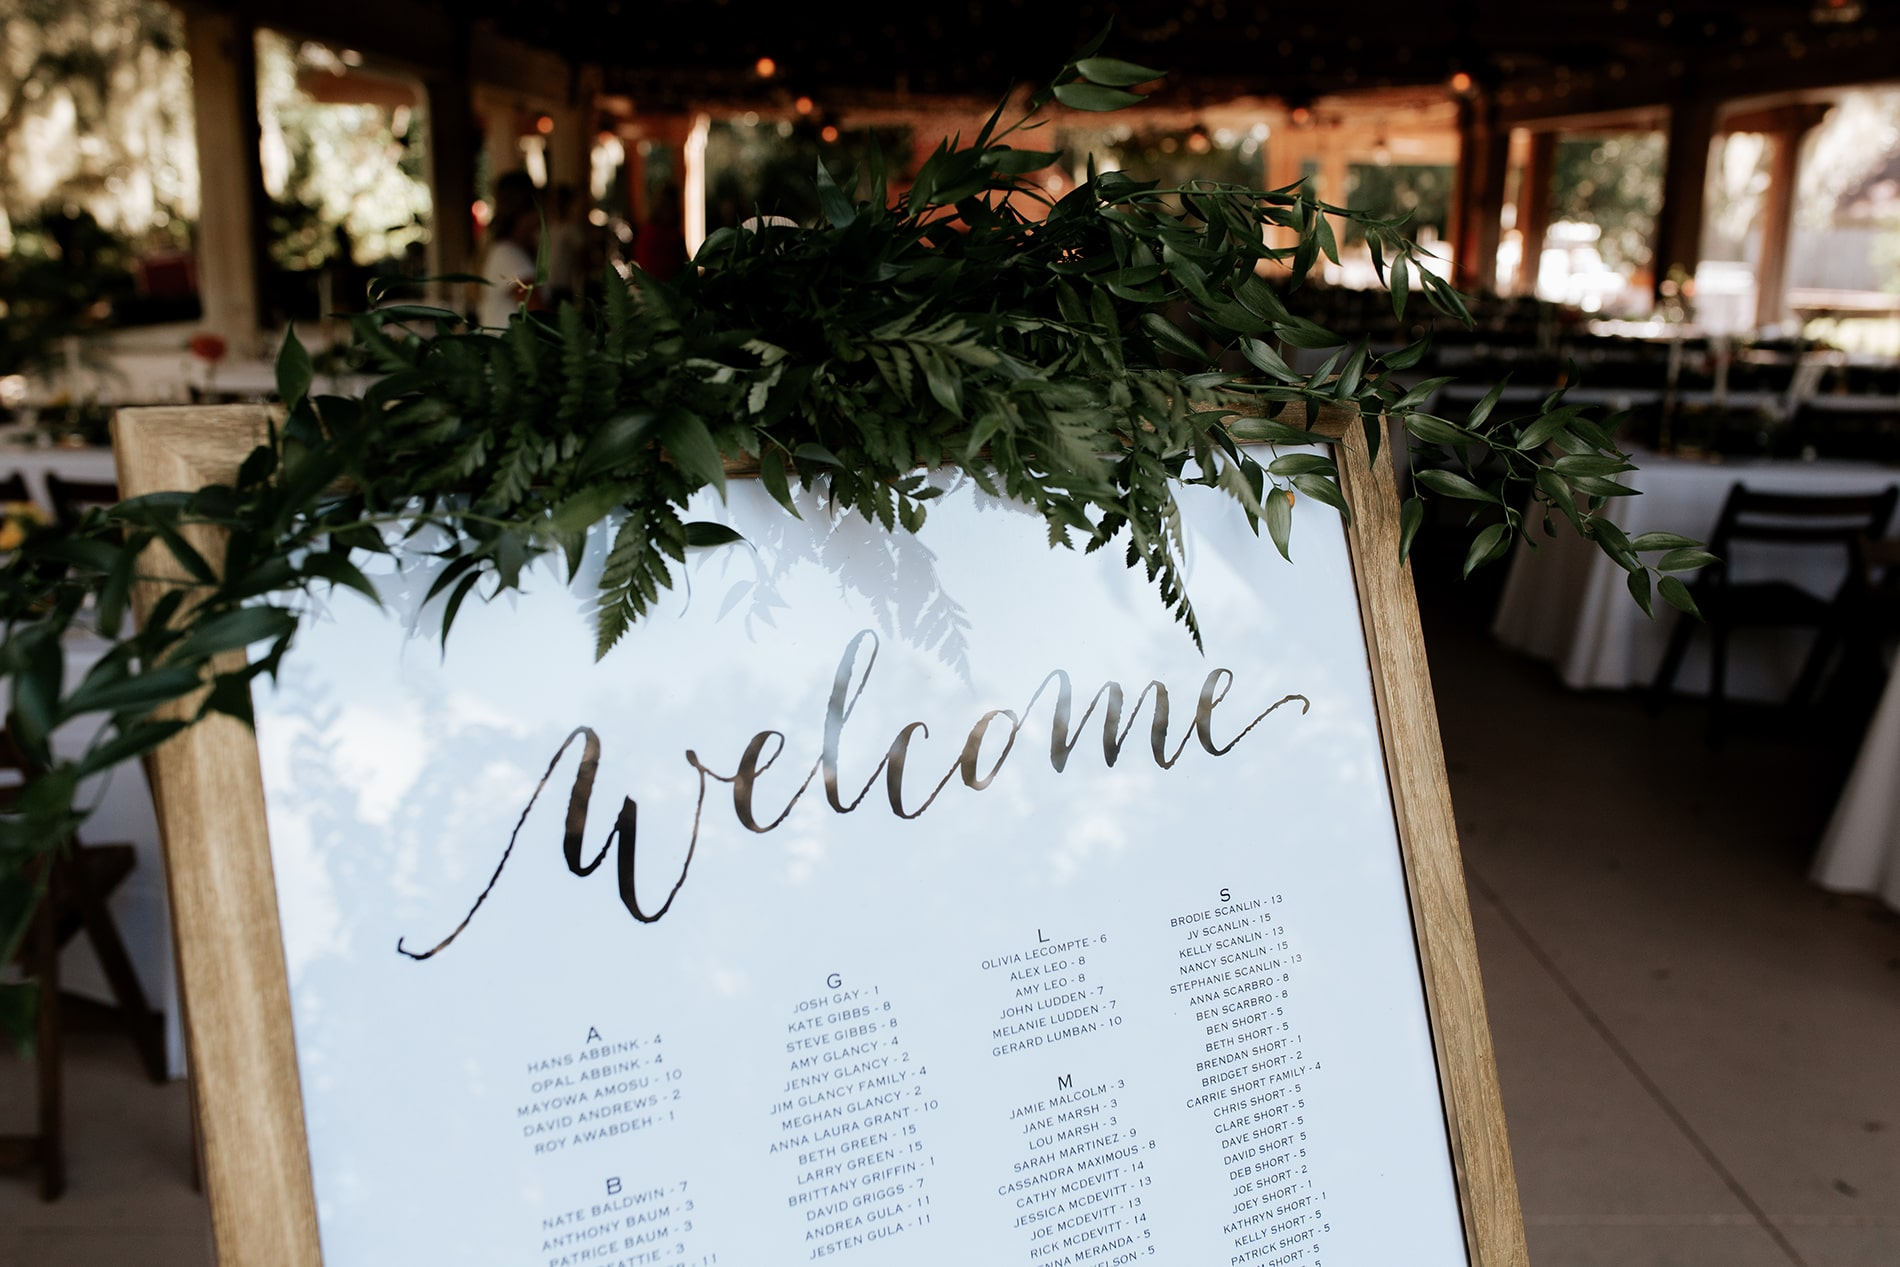 lowcountry-kitchen-catering-beaufort-sc-mary-grace-and-judd-kennedy-wedding-ceremony-welcome-min.jpg